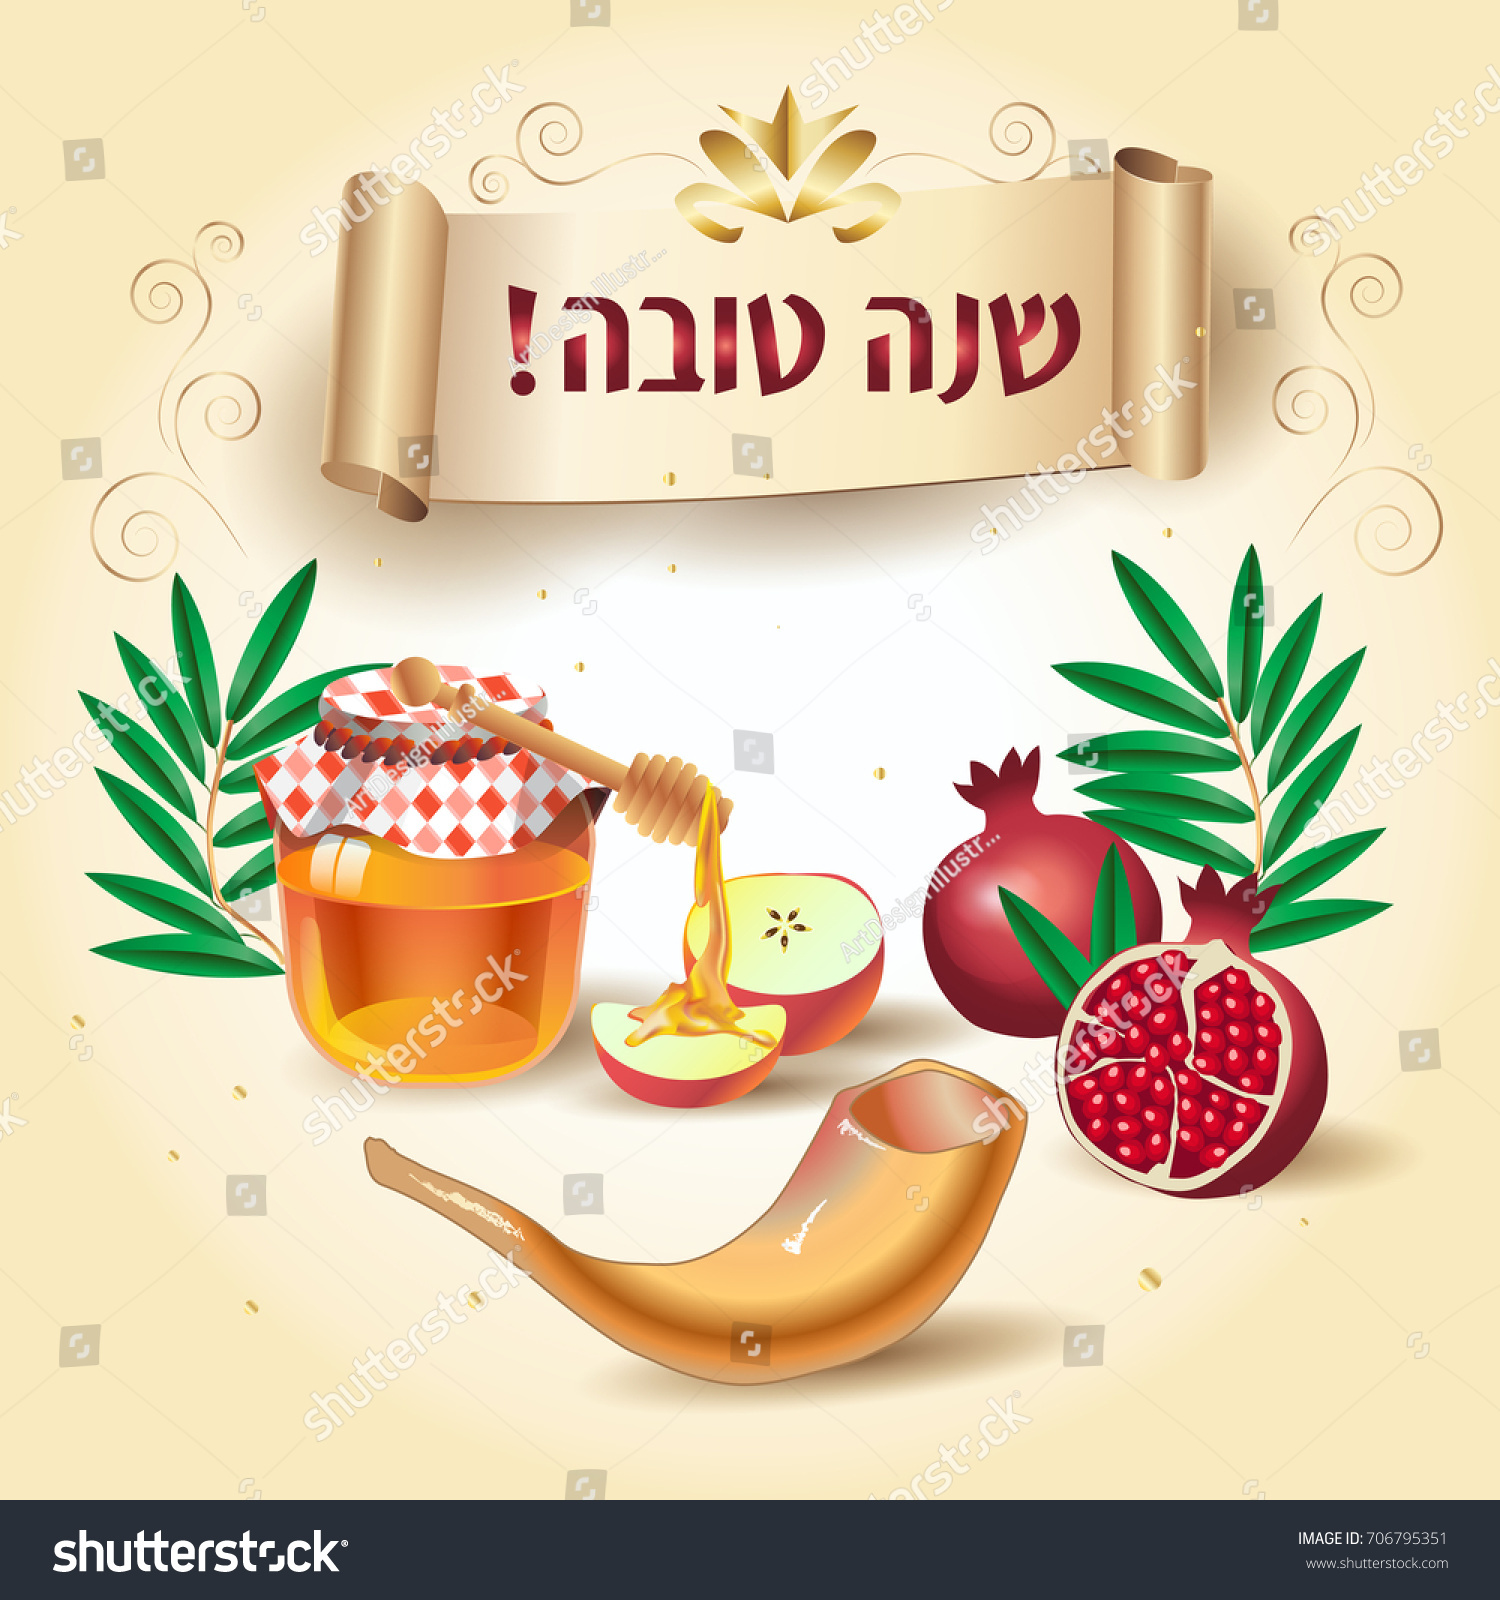 Happy New Year Rosh Hashanah Greeting Stock Vector Royalty Free